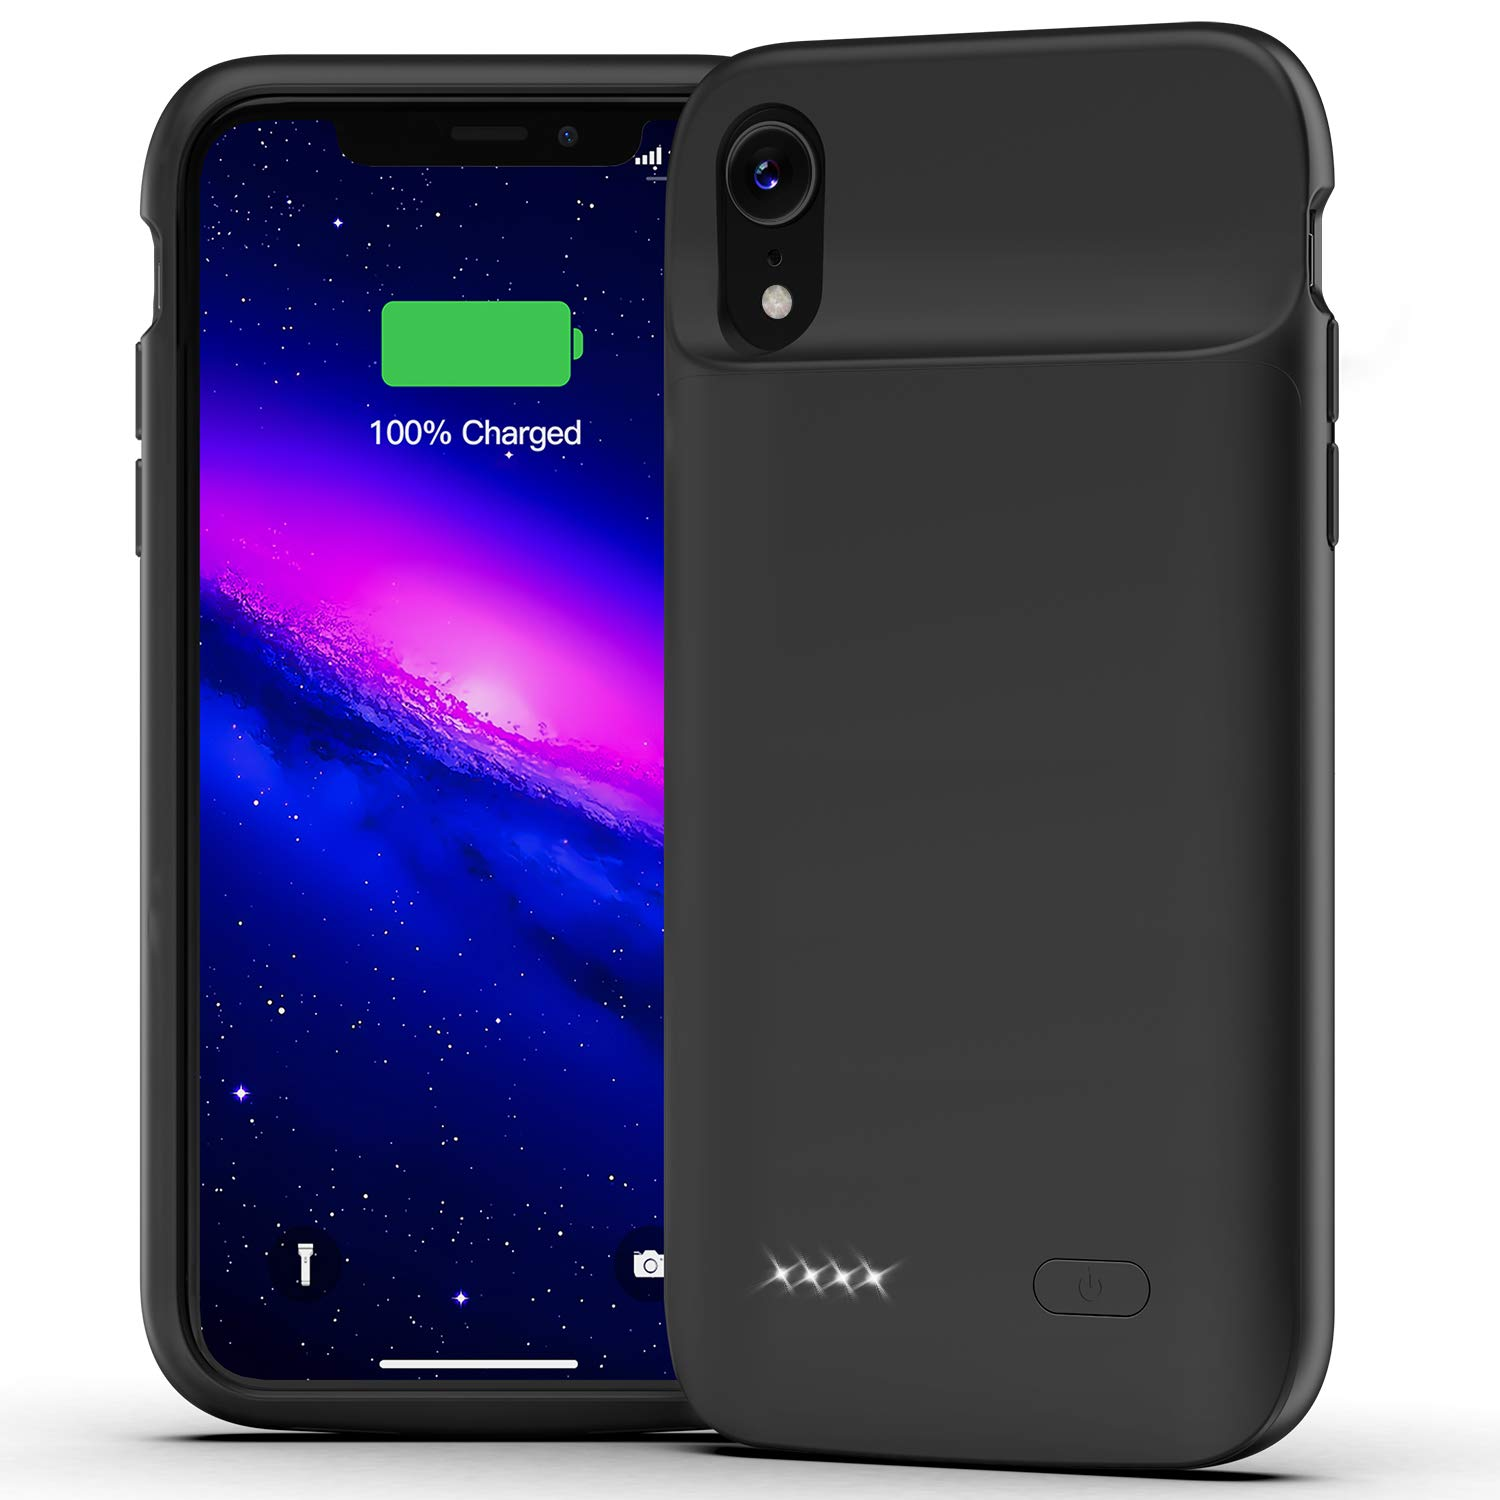 Funda Con Bateria de 5000mah para Apple Iphone Xr LONLIF [7T6D49T2]